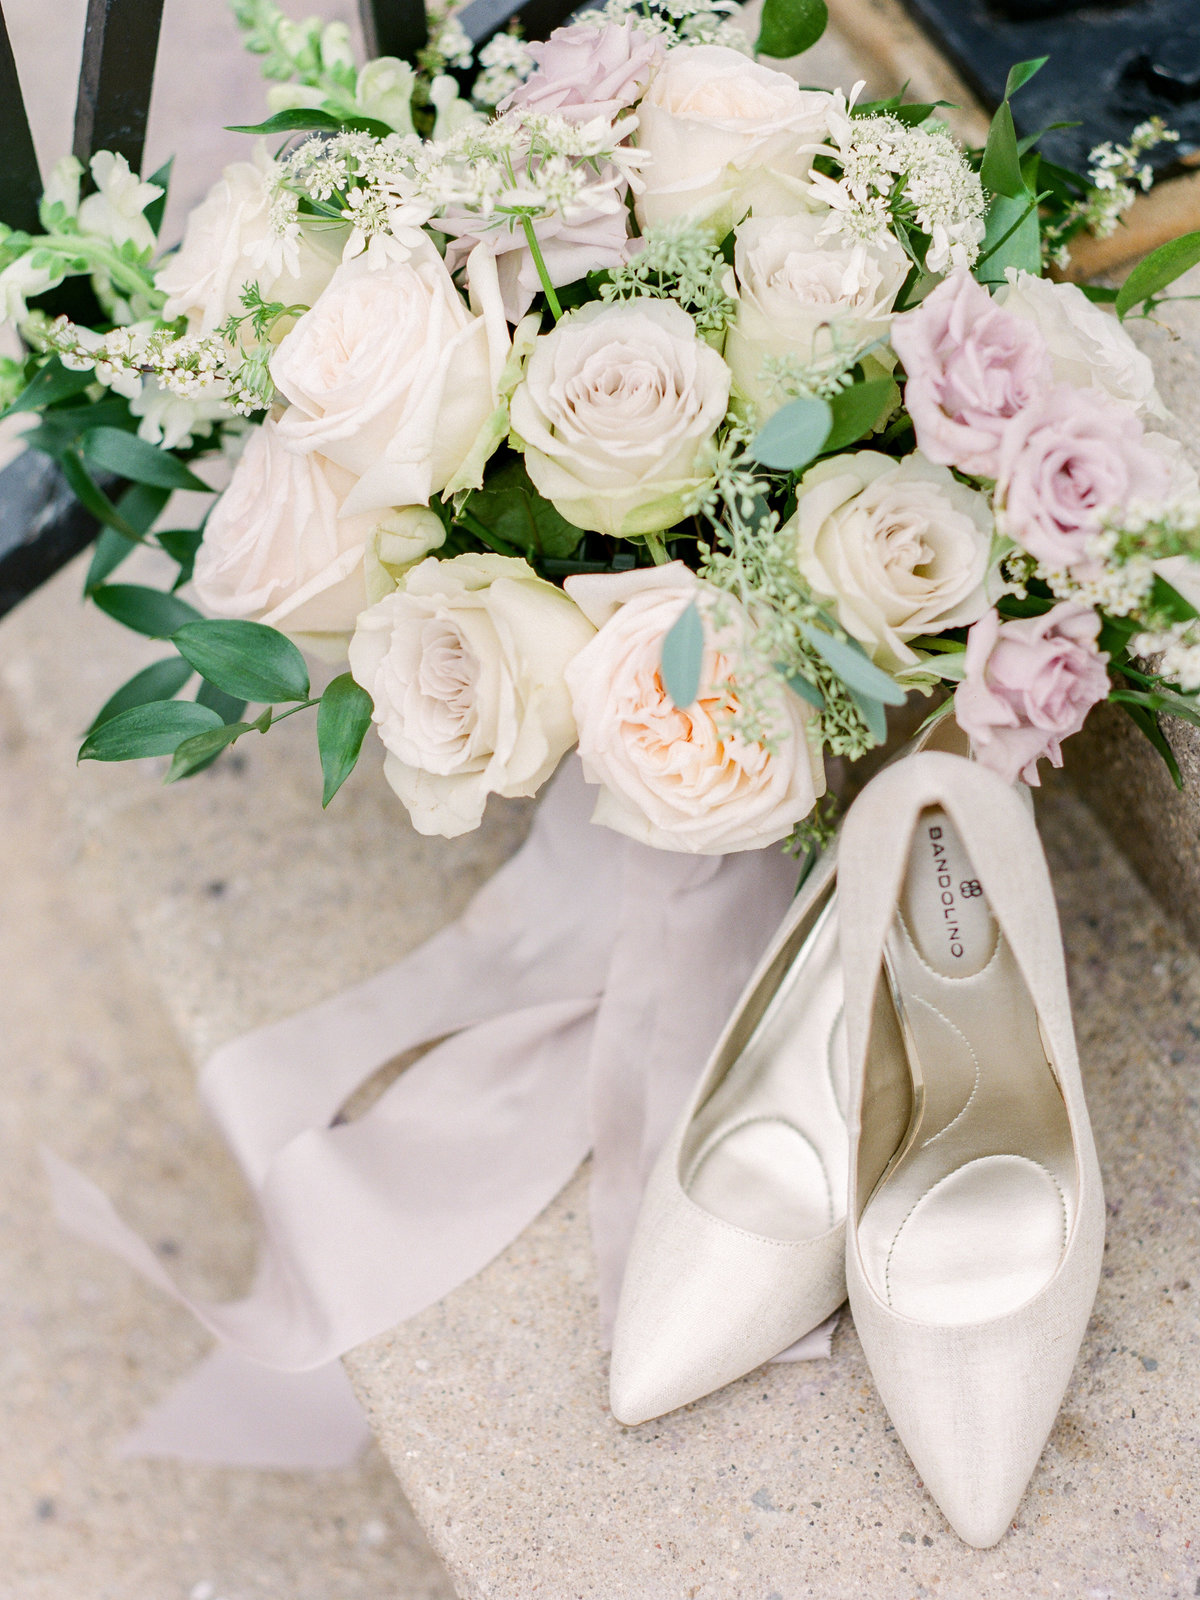 bouquet sitting next to neutral wedding shoes